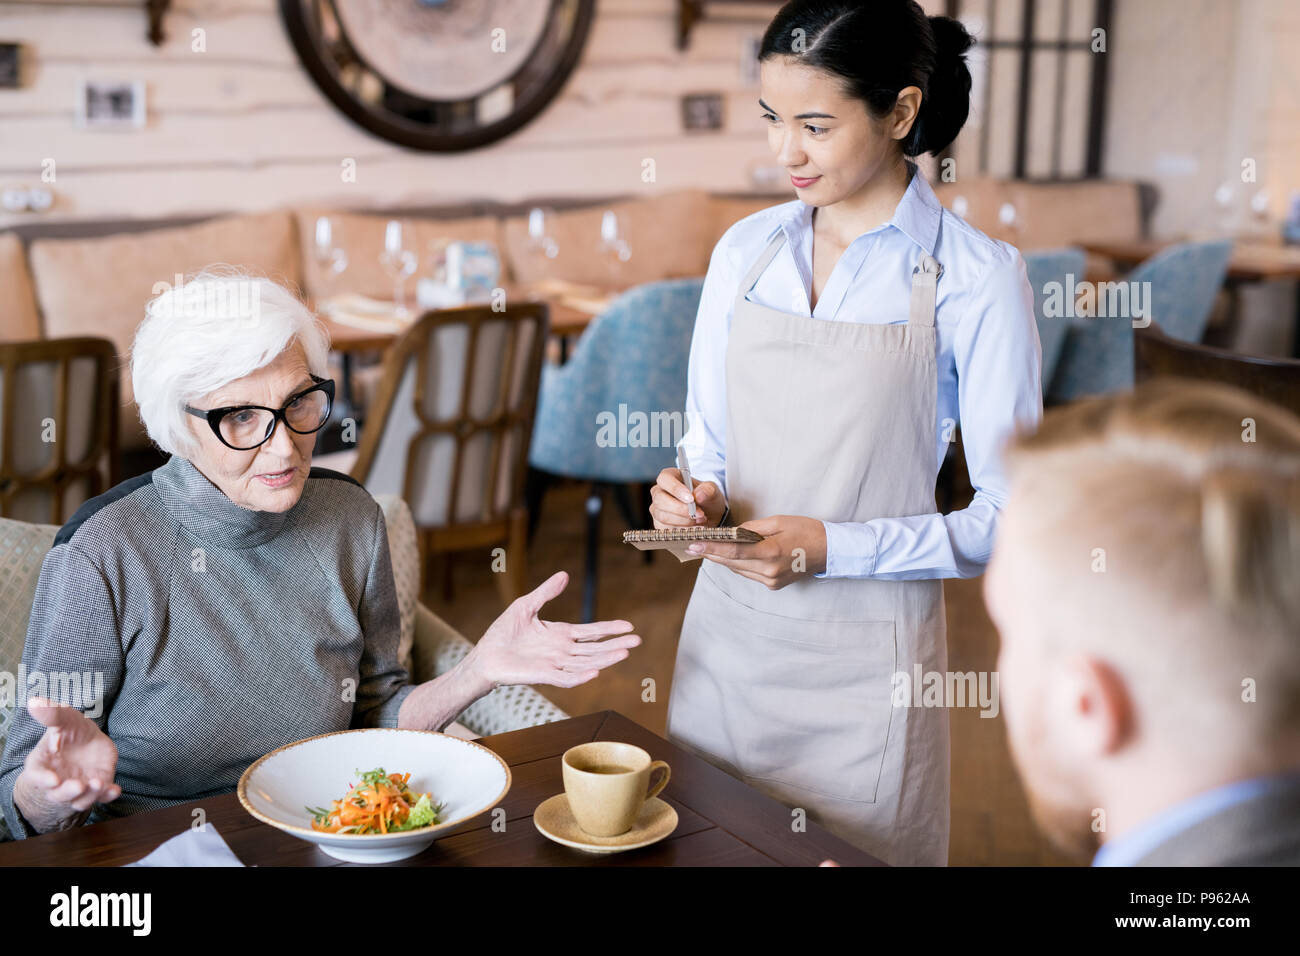 Family dinner at the restaurant - Stock Image